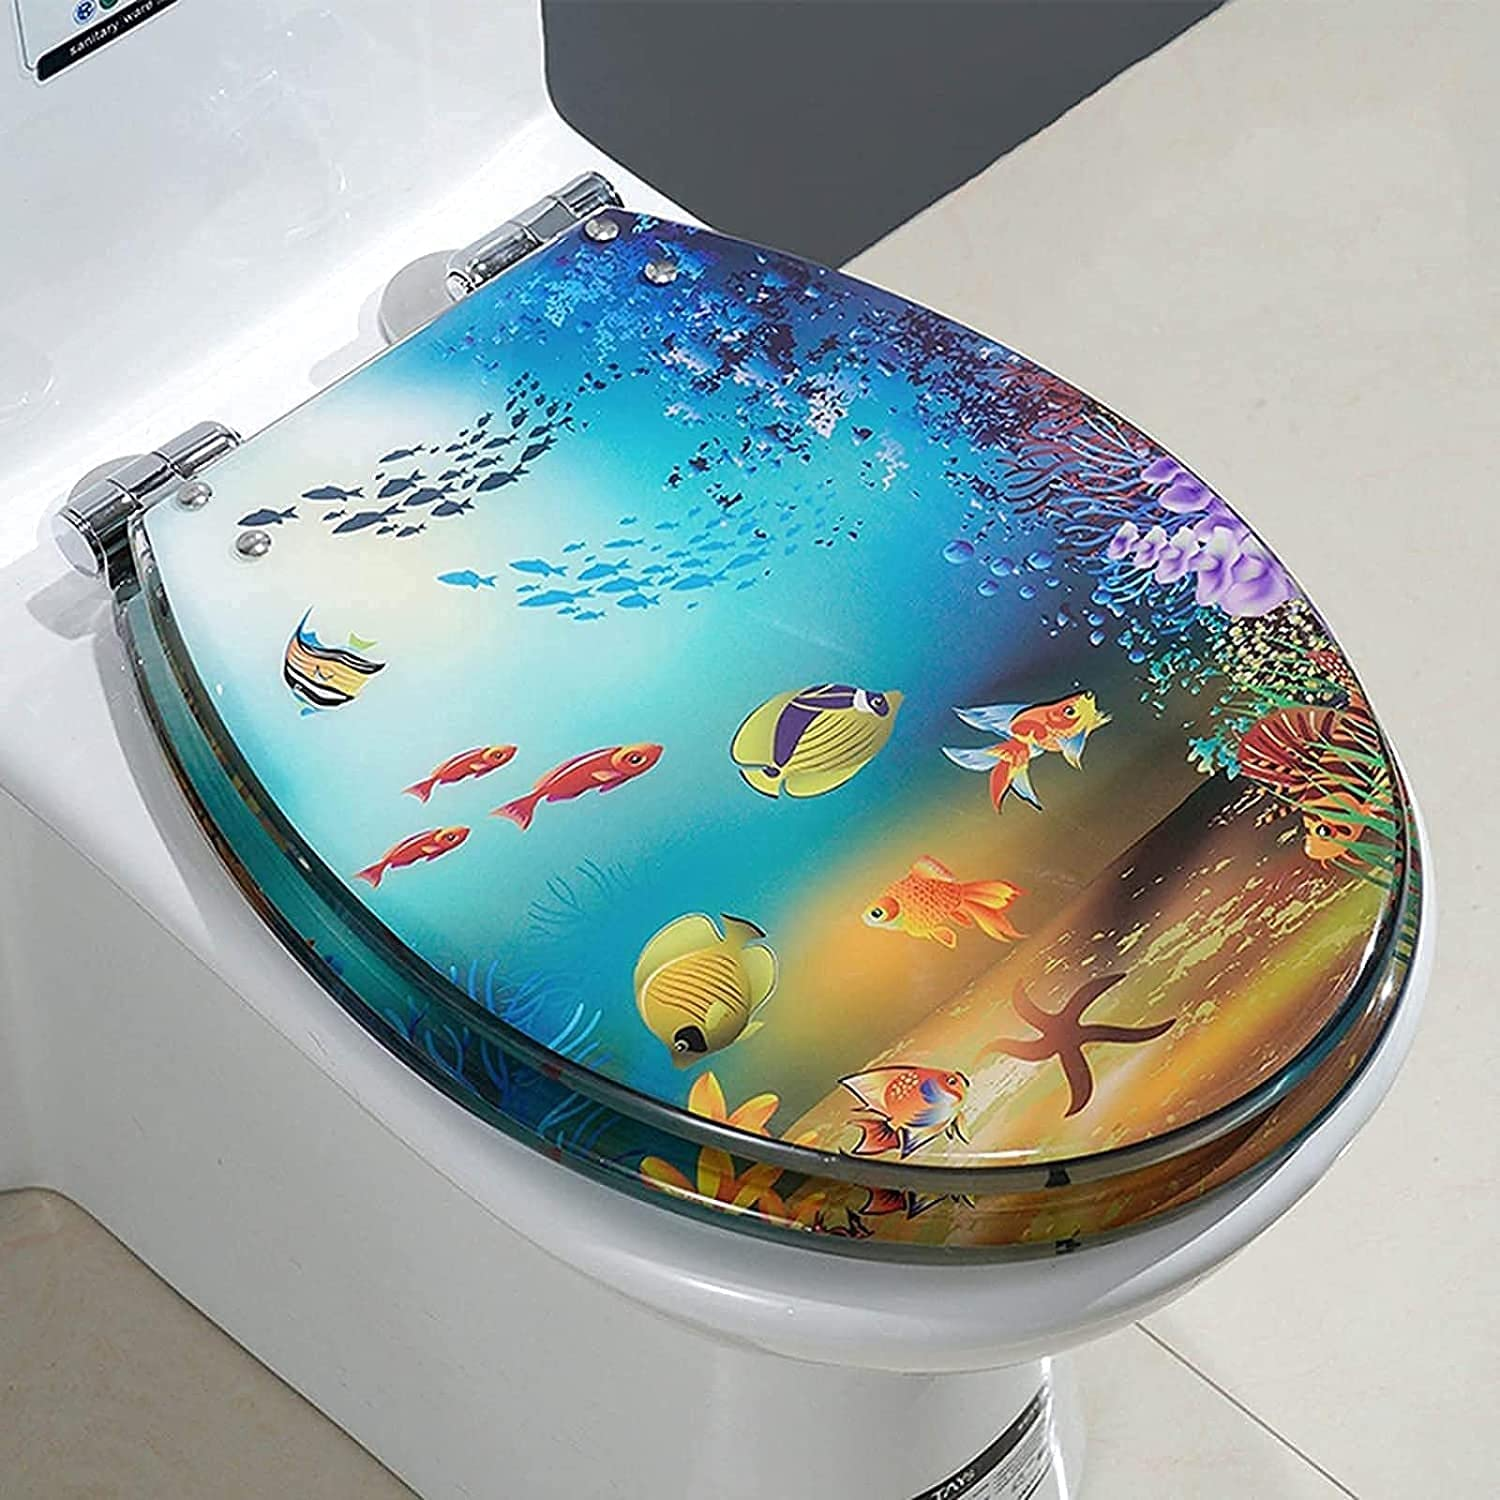 NFRMJMR Resin 0.6 Inch Thicken Sl Be excellence super welcome Round Toilet Seat